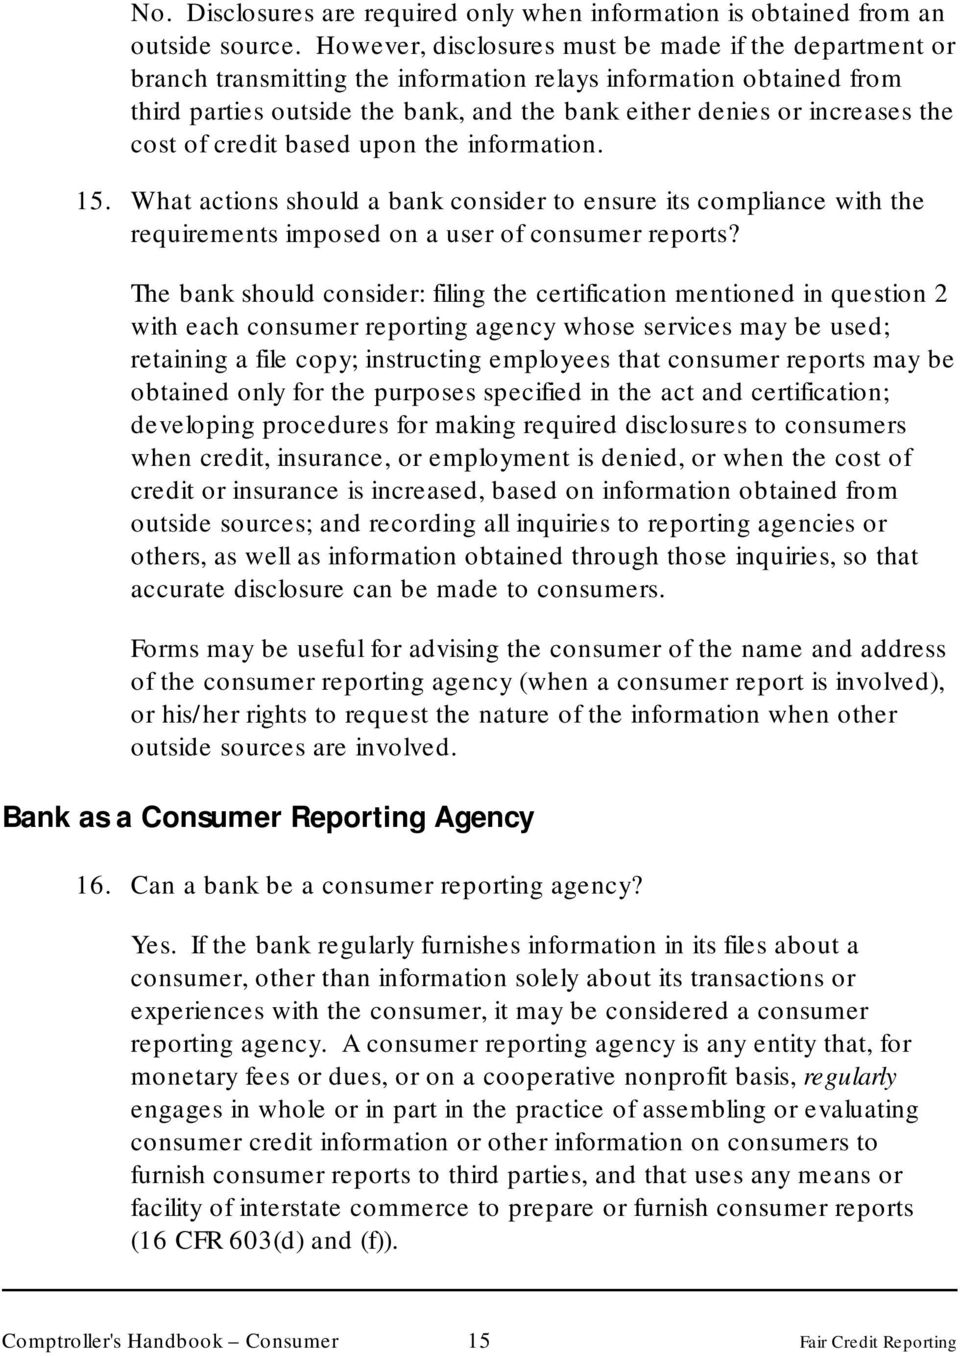 cost of credit based upon the information. 15. What actions should a bank consider to ensure its compliance with the requirements imposed on a user of consumer reports?